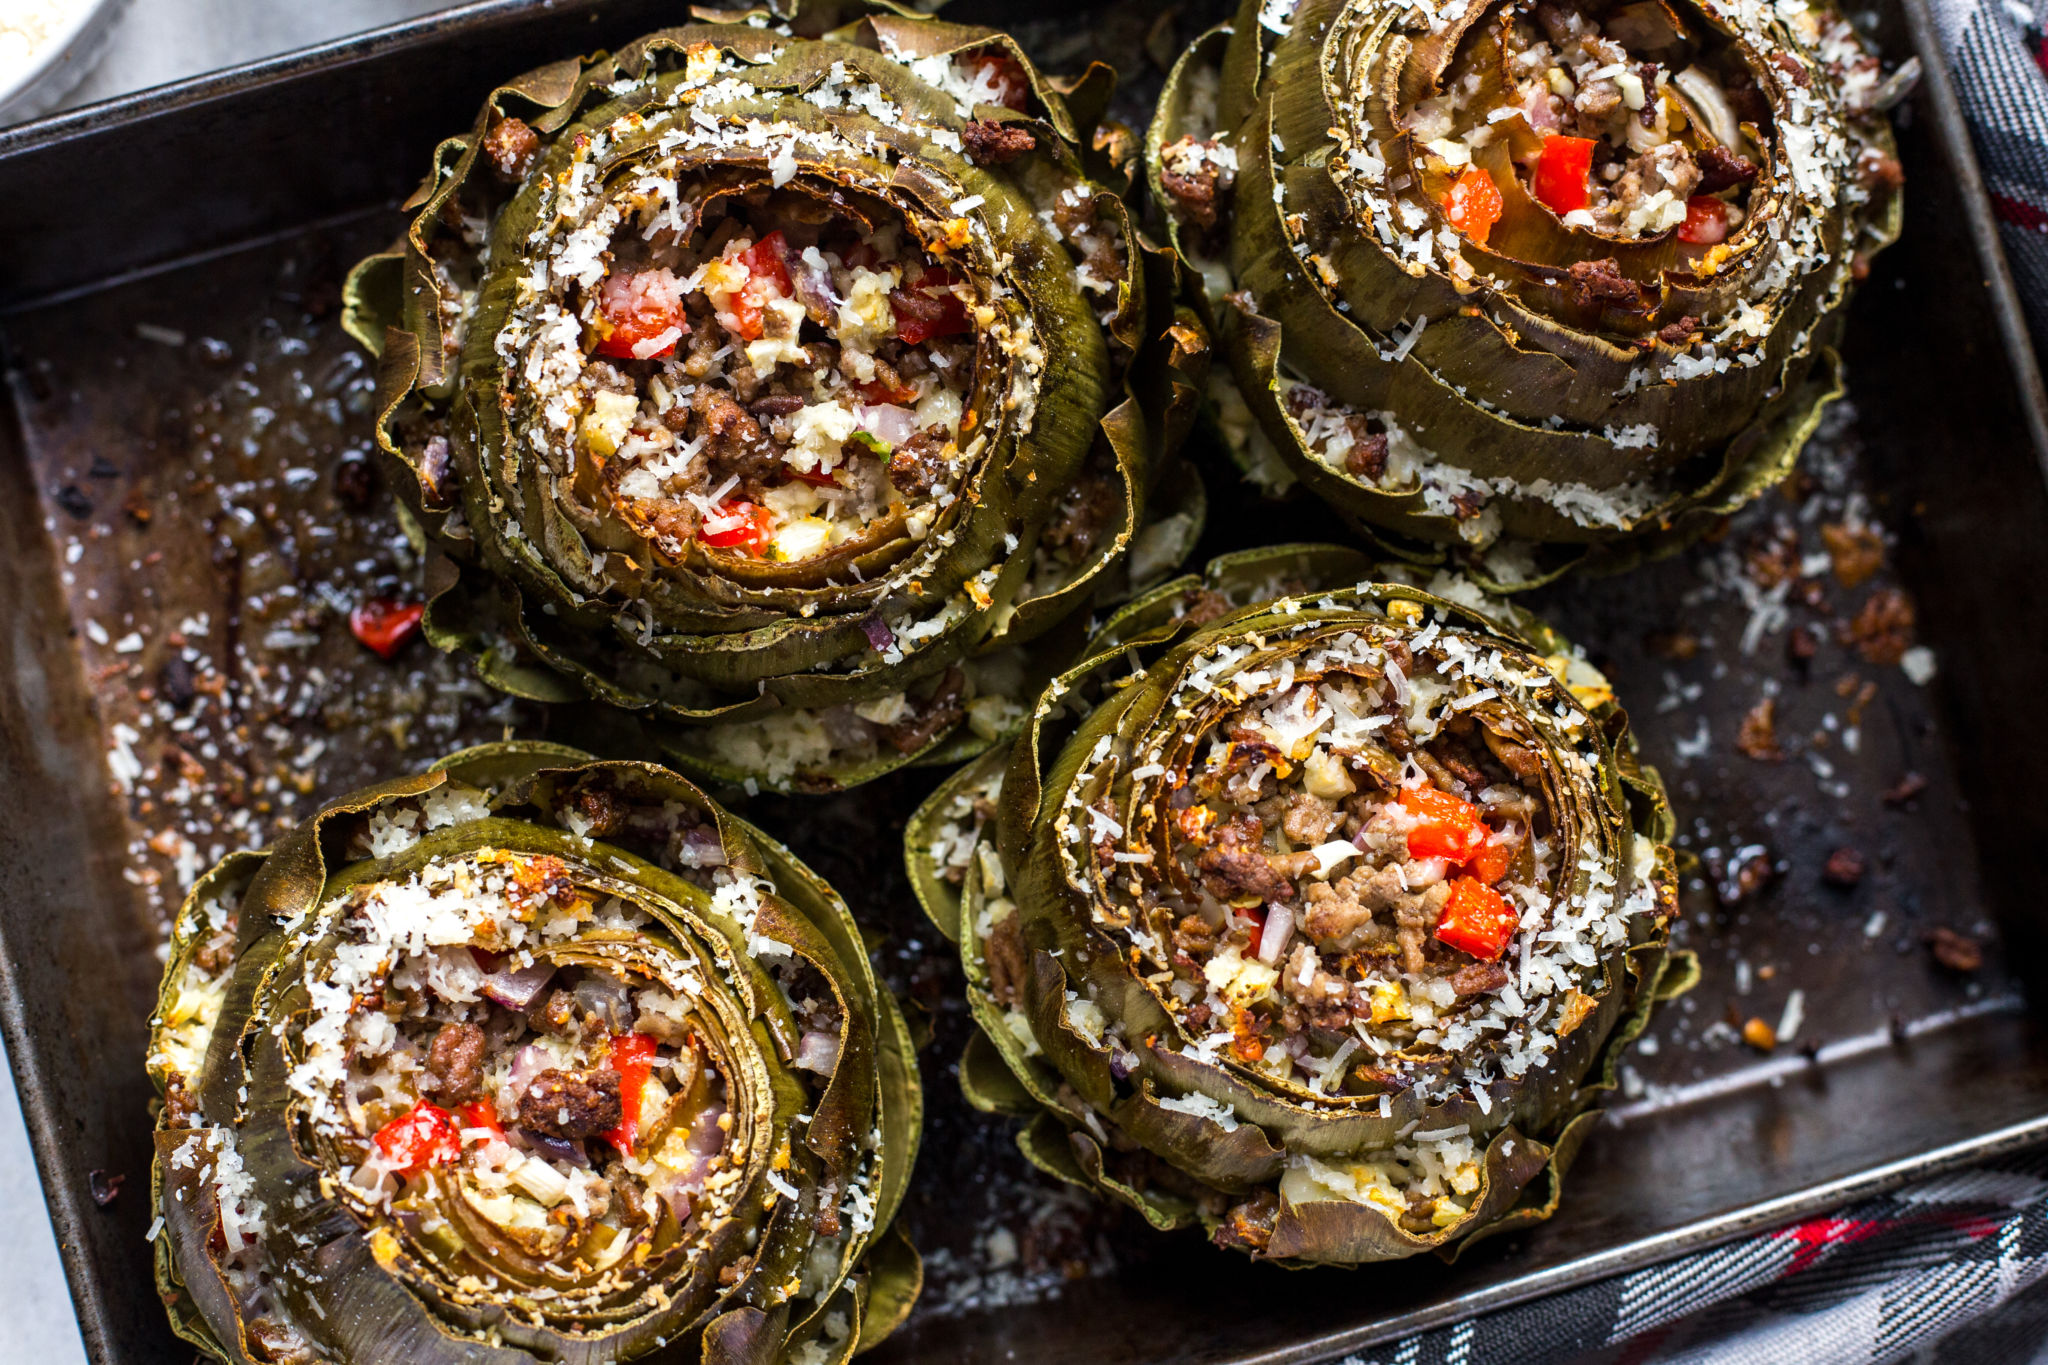 Stuffed Artichokes with Cauliflower Rice